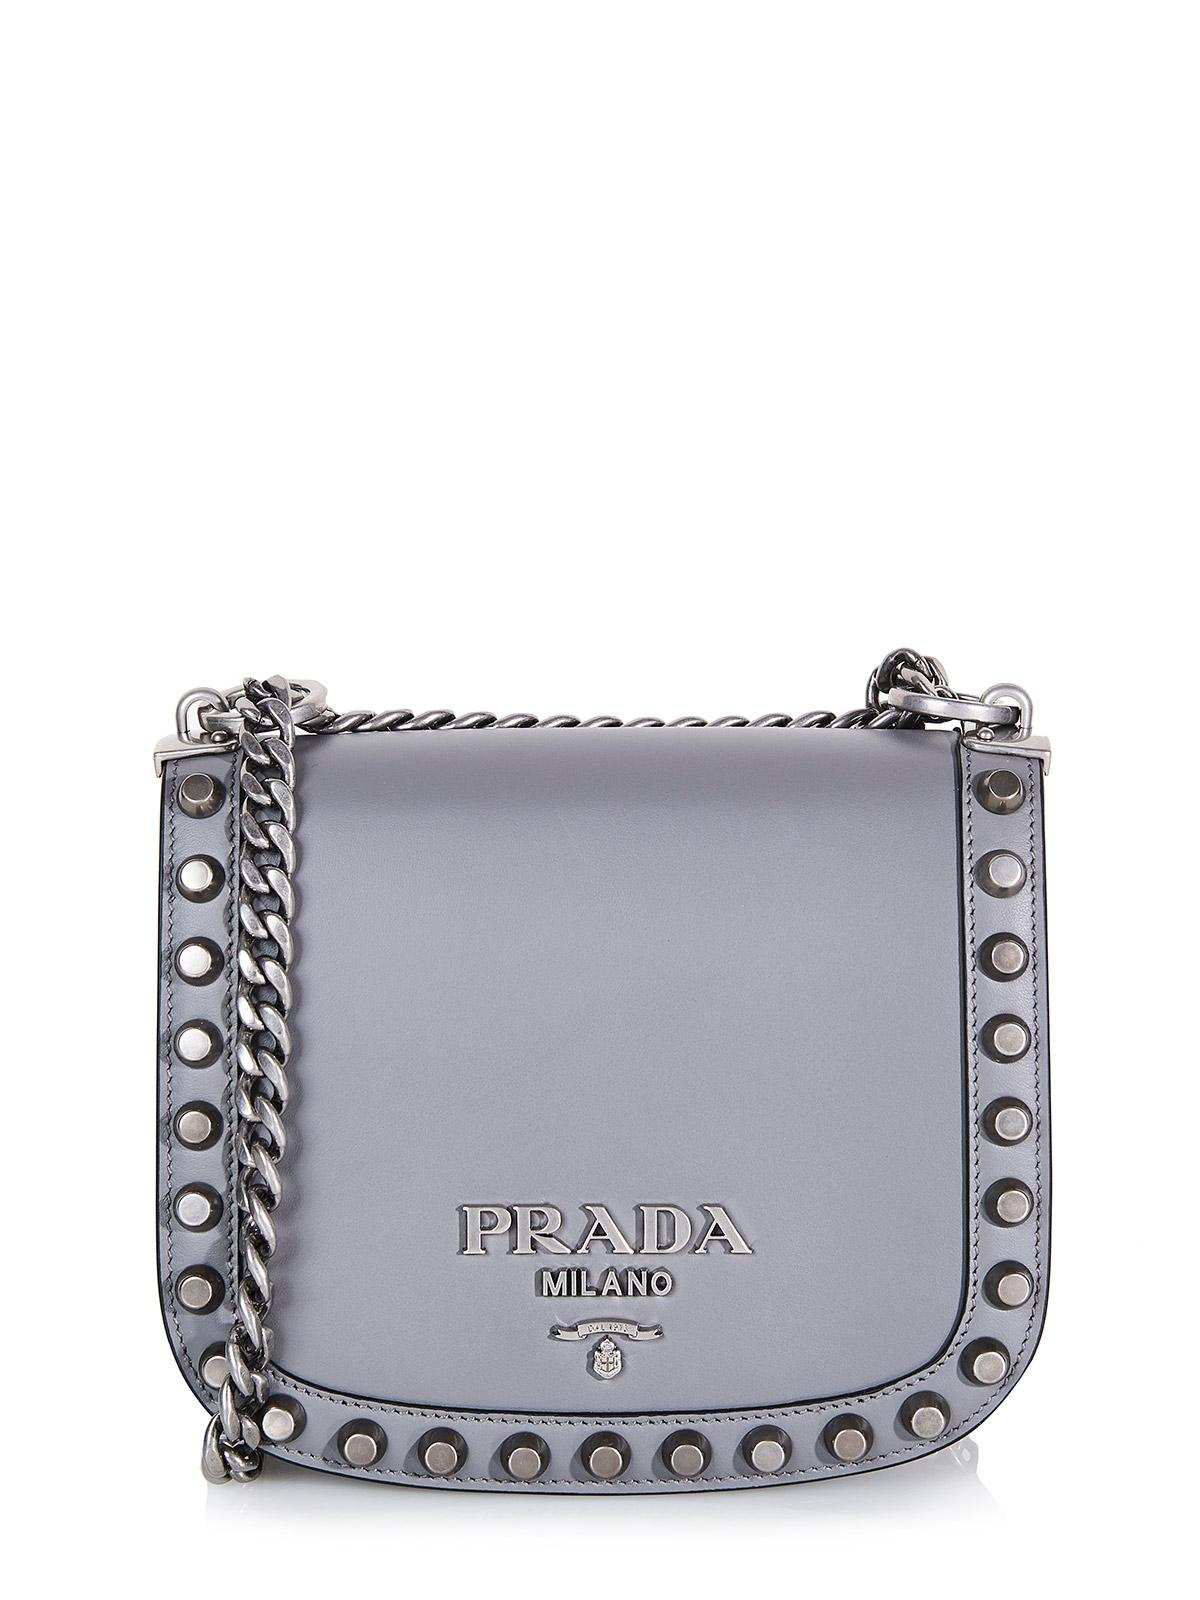 586322fa4626 free shipping prada studded leather shoulder bag 8ca40 fbfbe